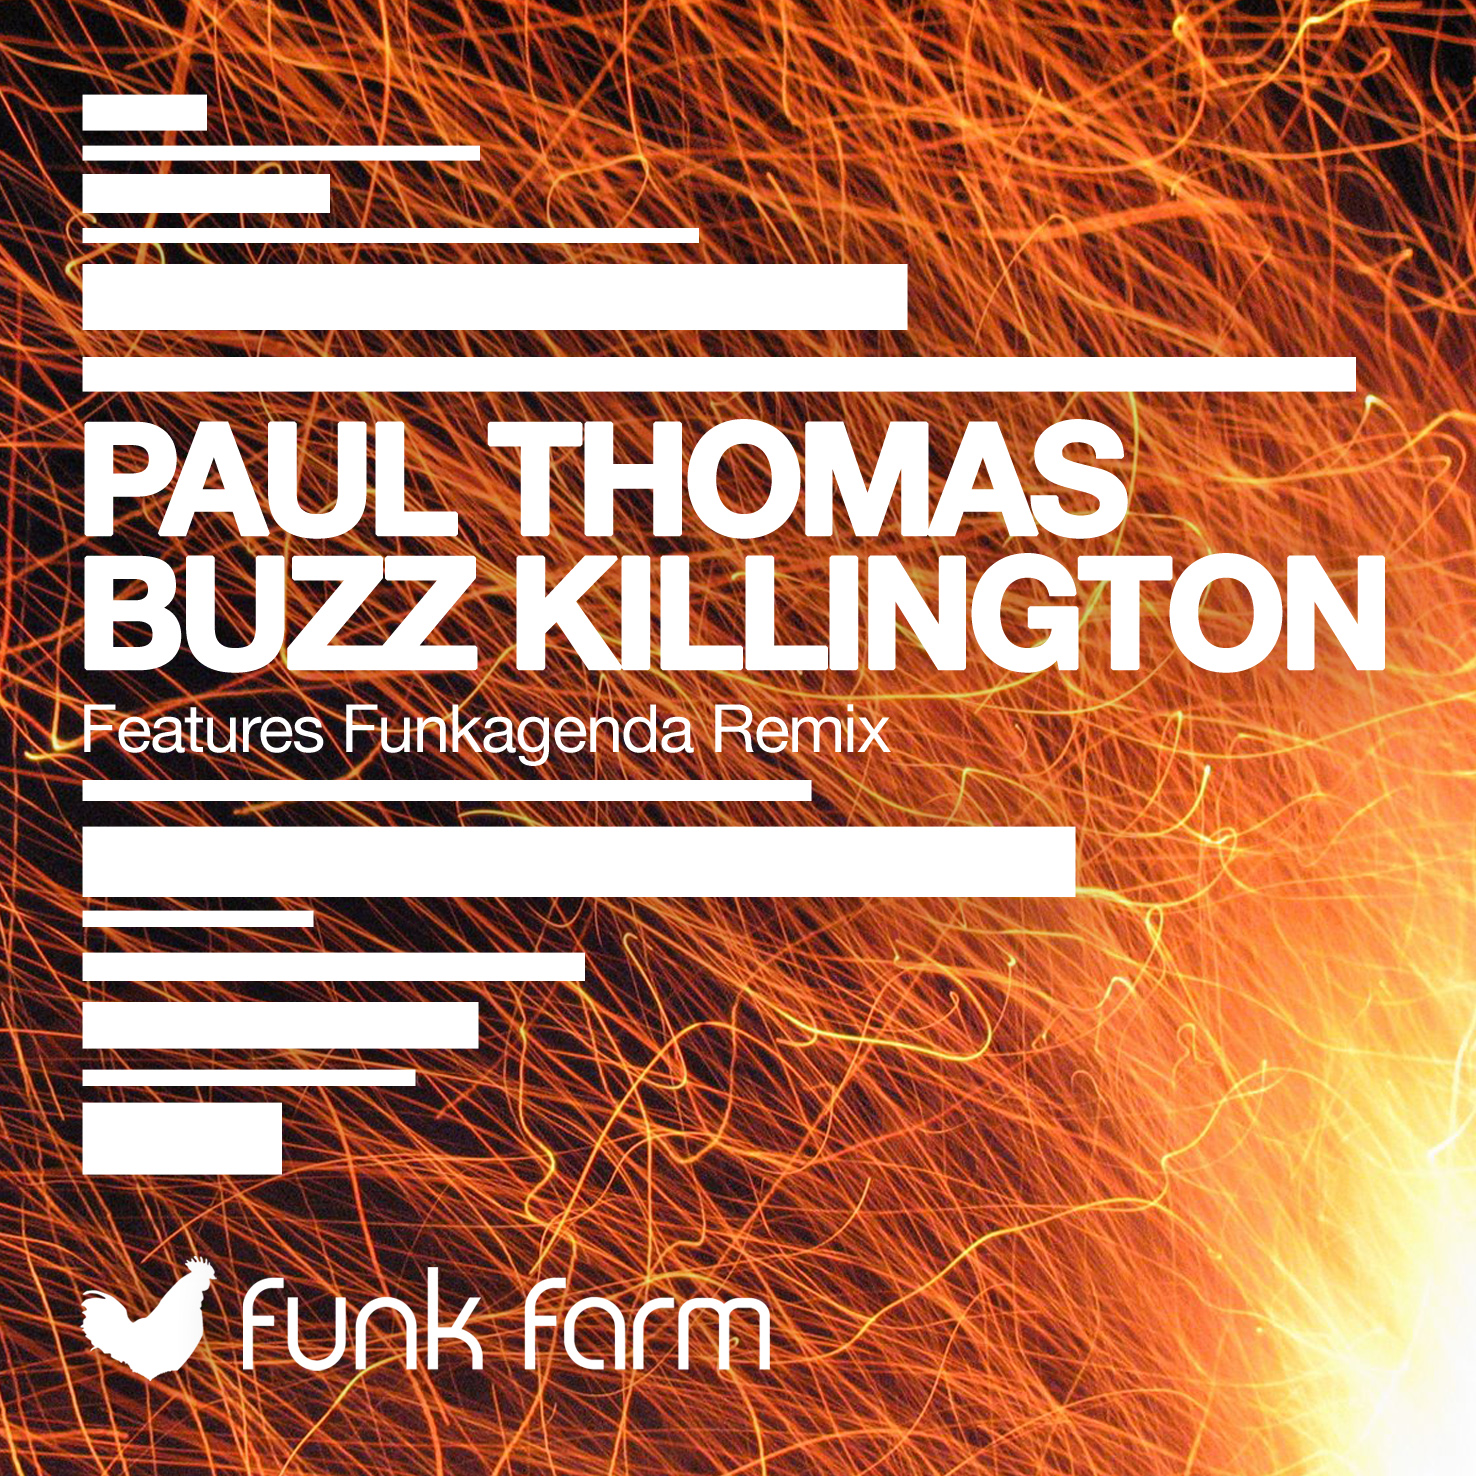 Paul Thomas - Buzz Killington (incl. Funkagenda Remix) [Funk Farm]